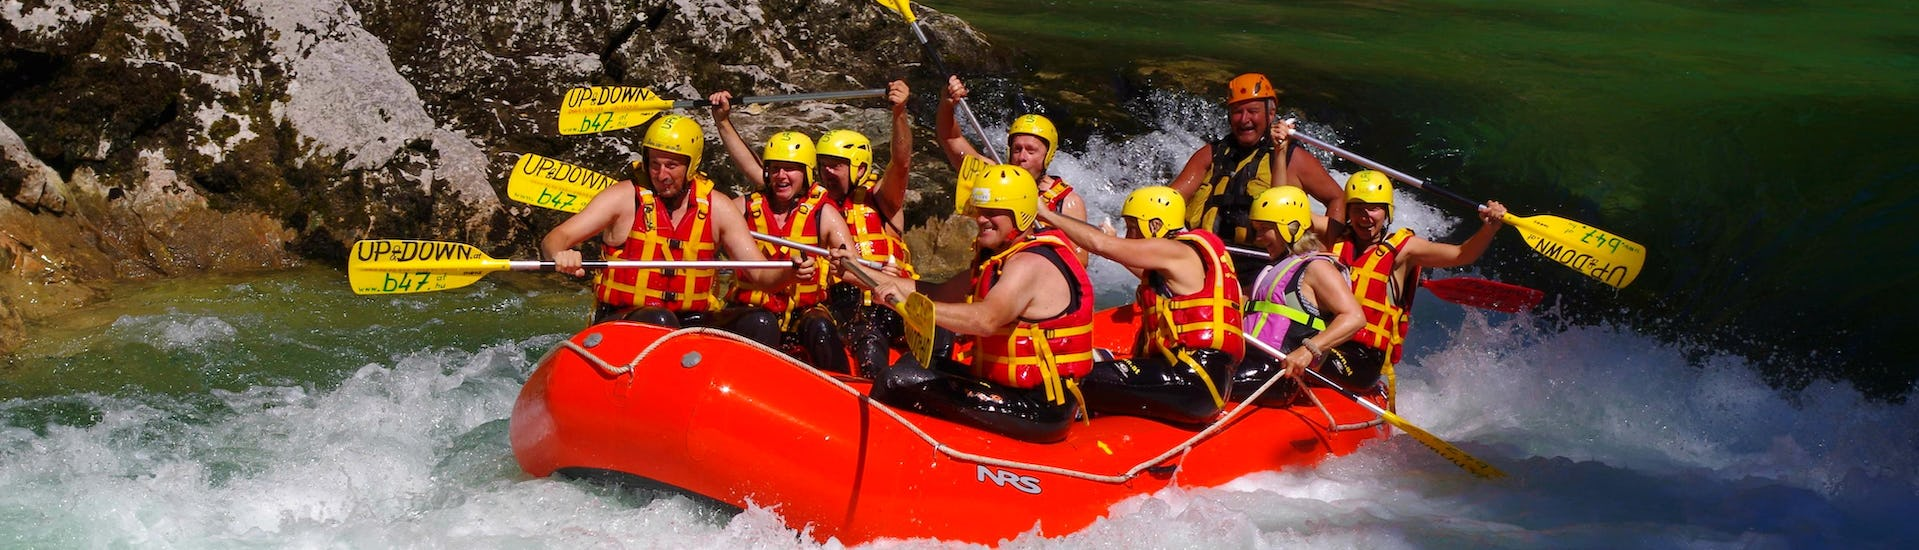 Rafting Day Tour for the Young and Old - Salza